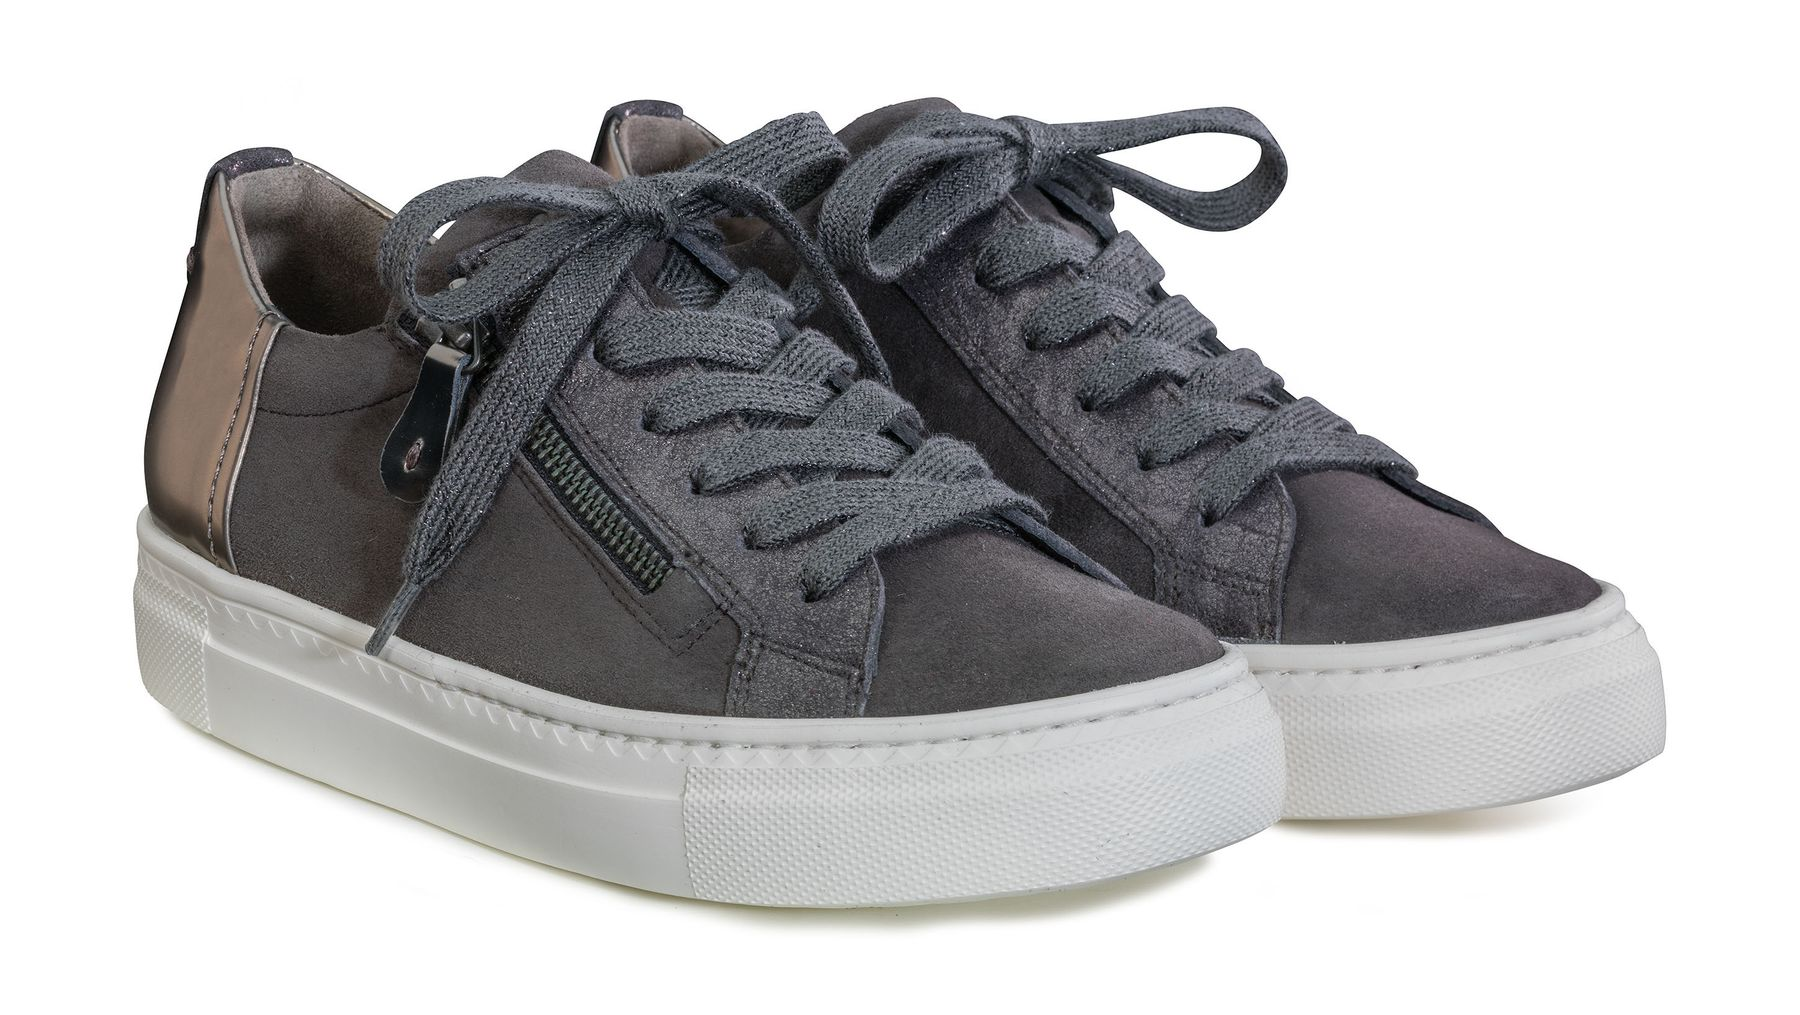 official photos b6477 a7414 Plateau-sneakers in grey - Paul Green